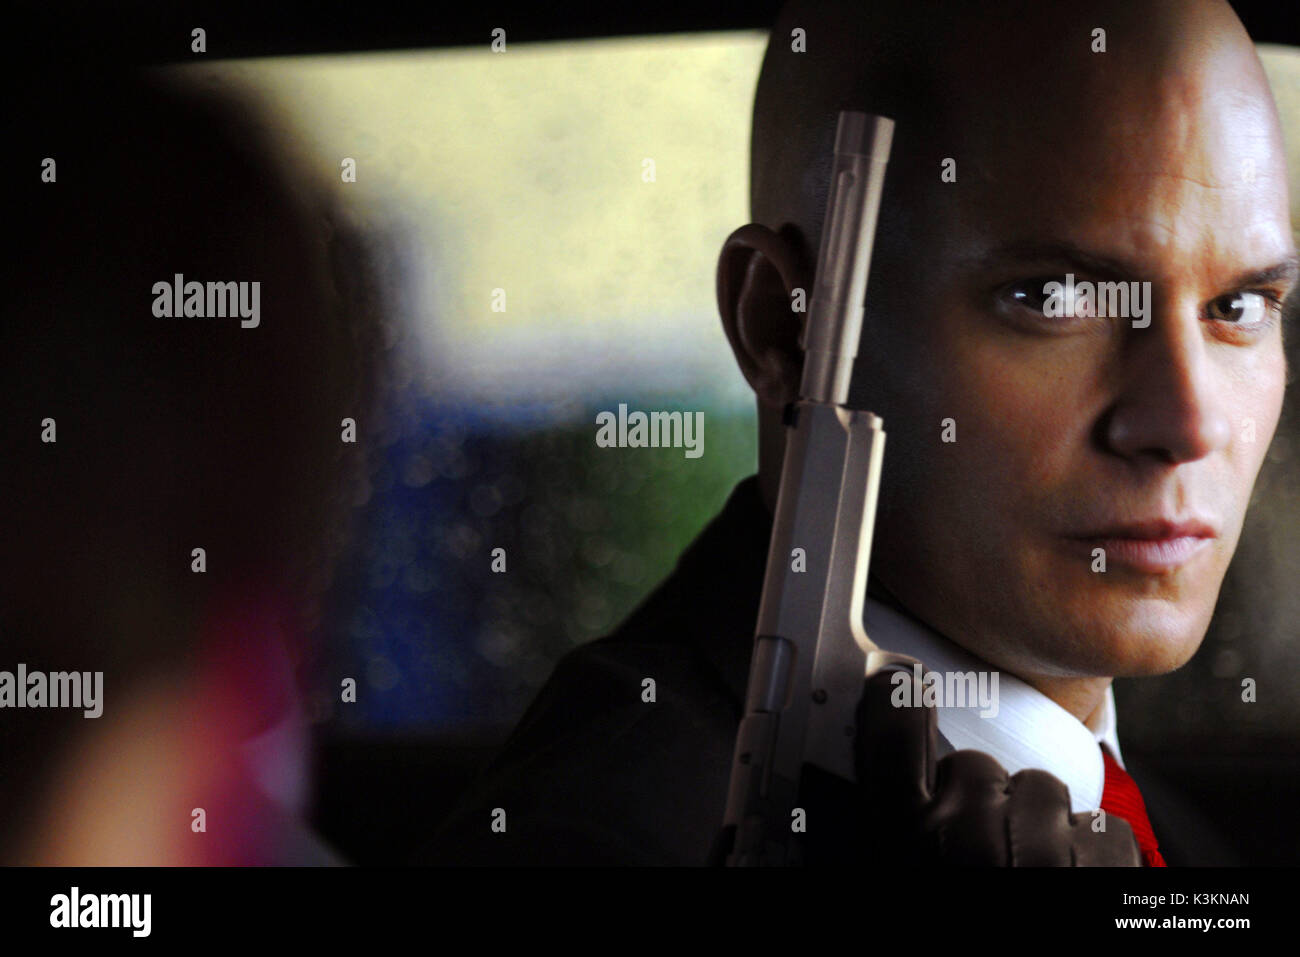 Hitman Timothy Olyphant As Agent 47 Date 2007 Stock Photo